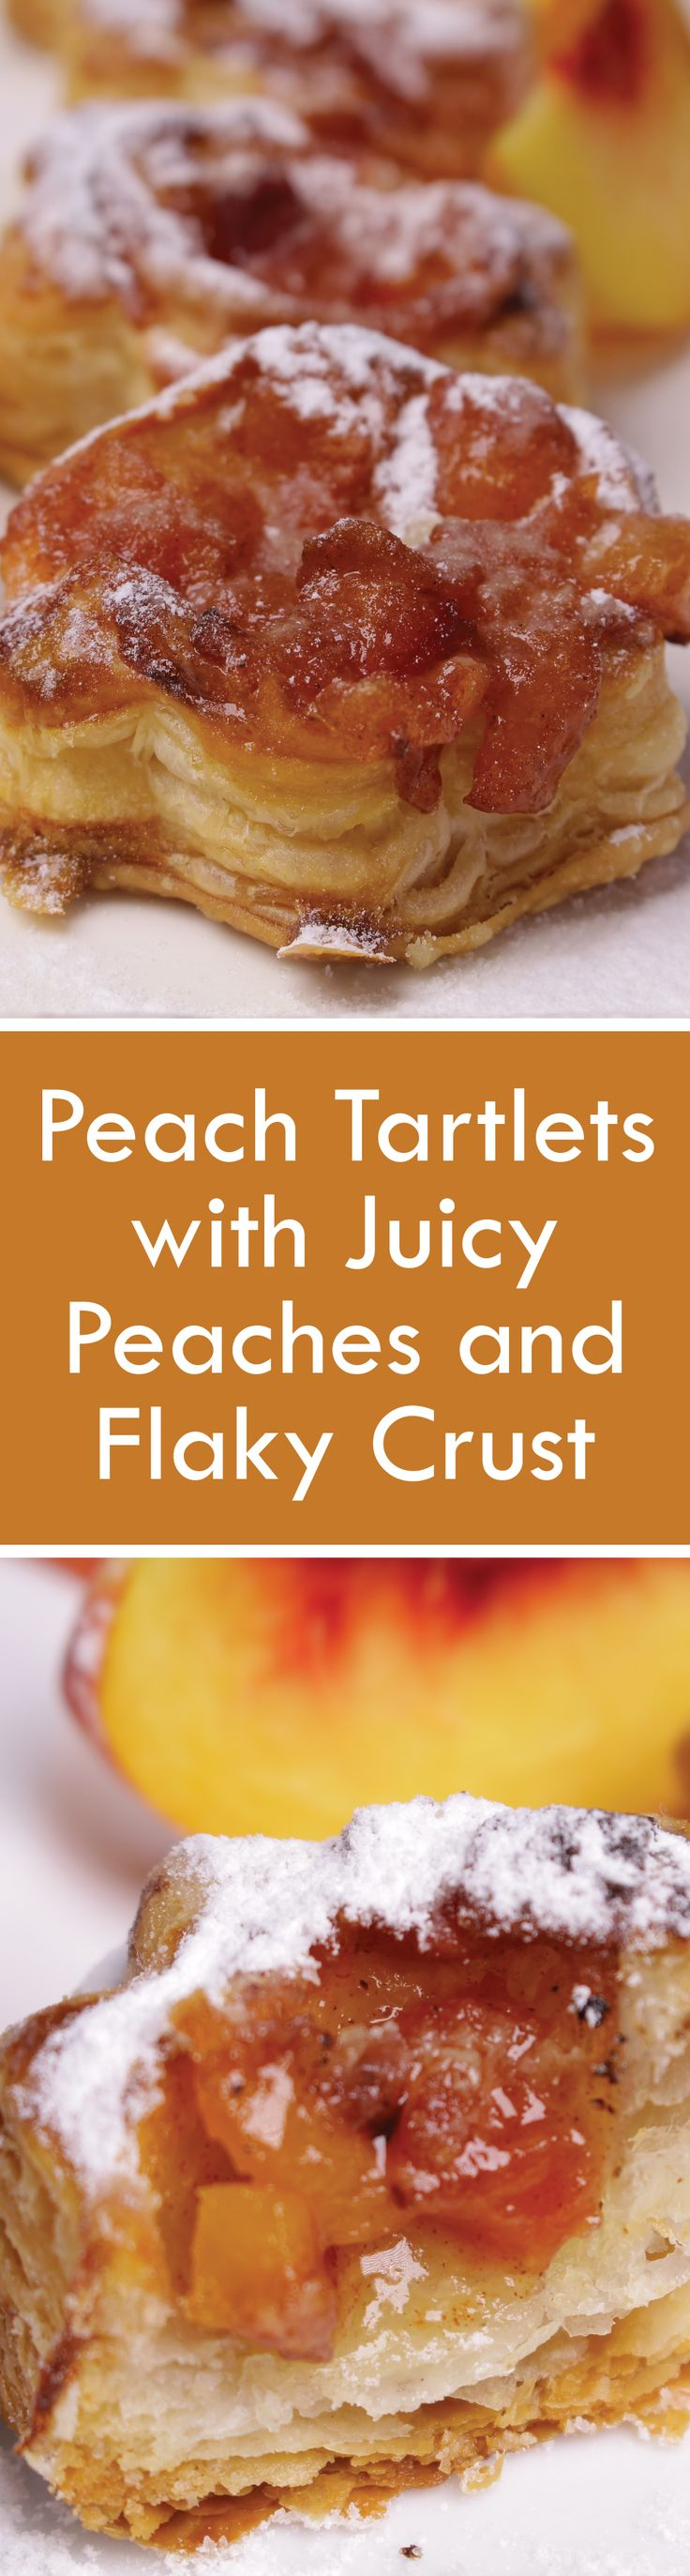 Peach Tartlets with Juicy Peaches and Flaky Crust - Nutri Recipes